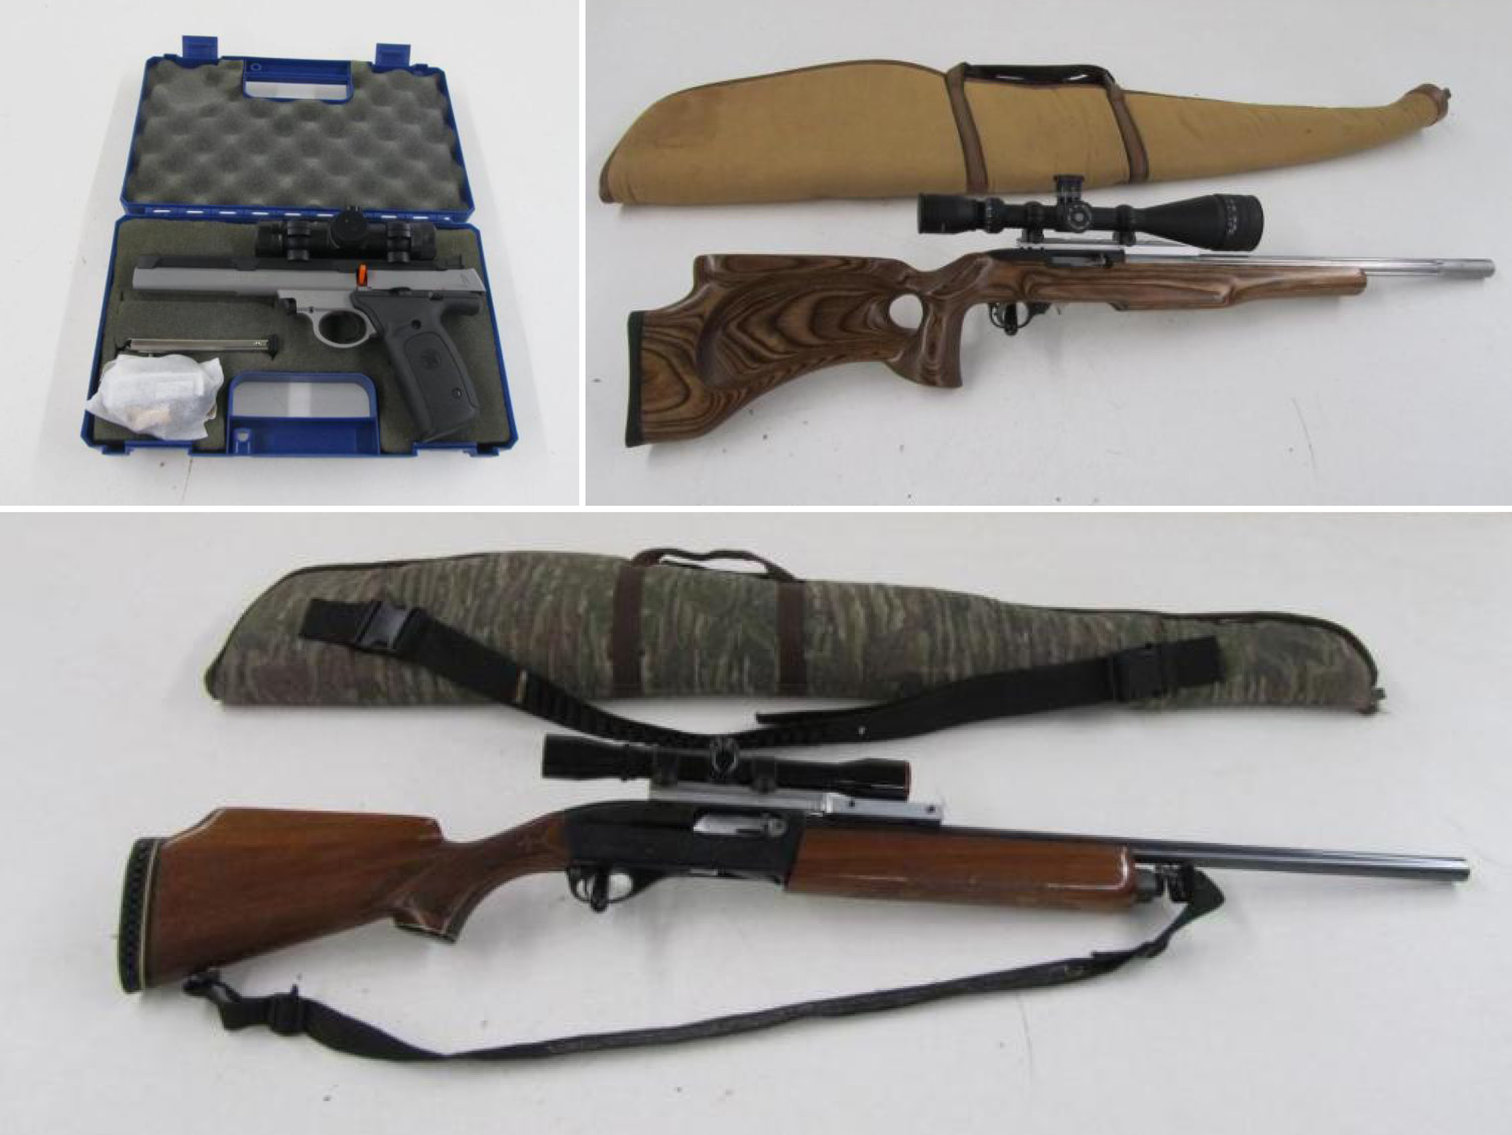 Private Firearm Collection, Pequot Lakes, MN